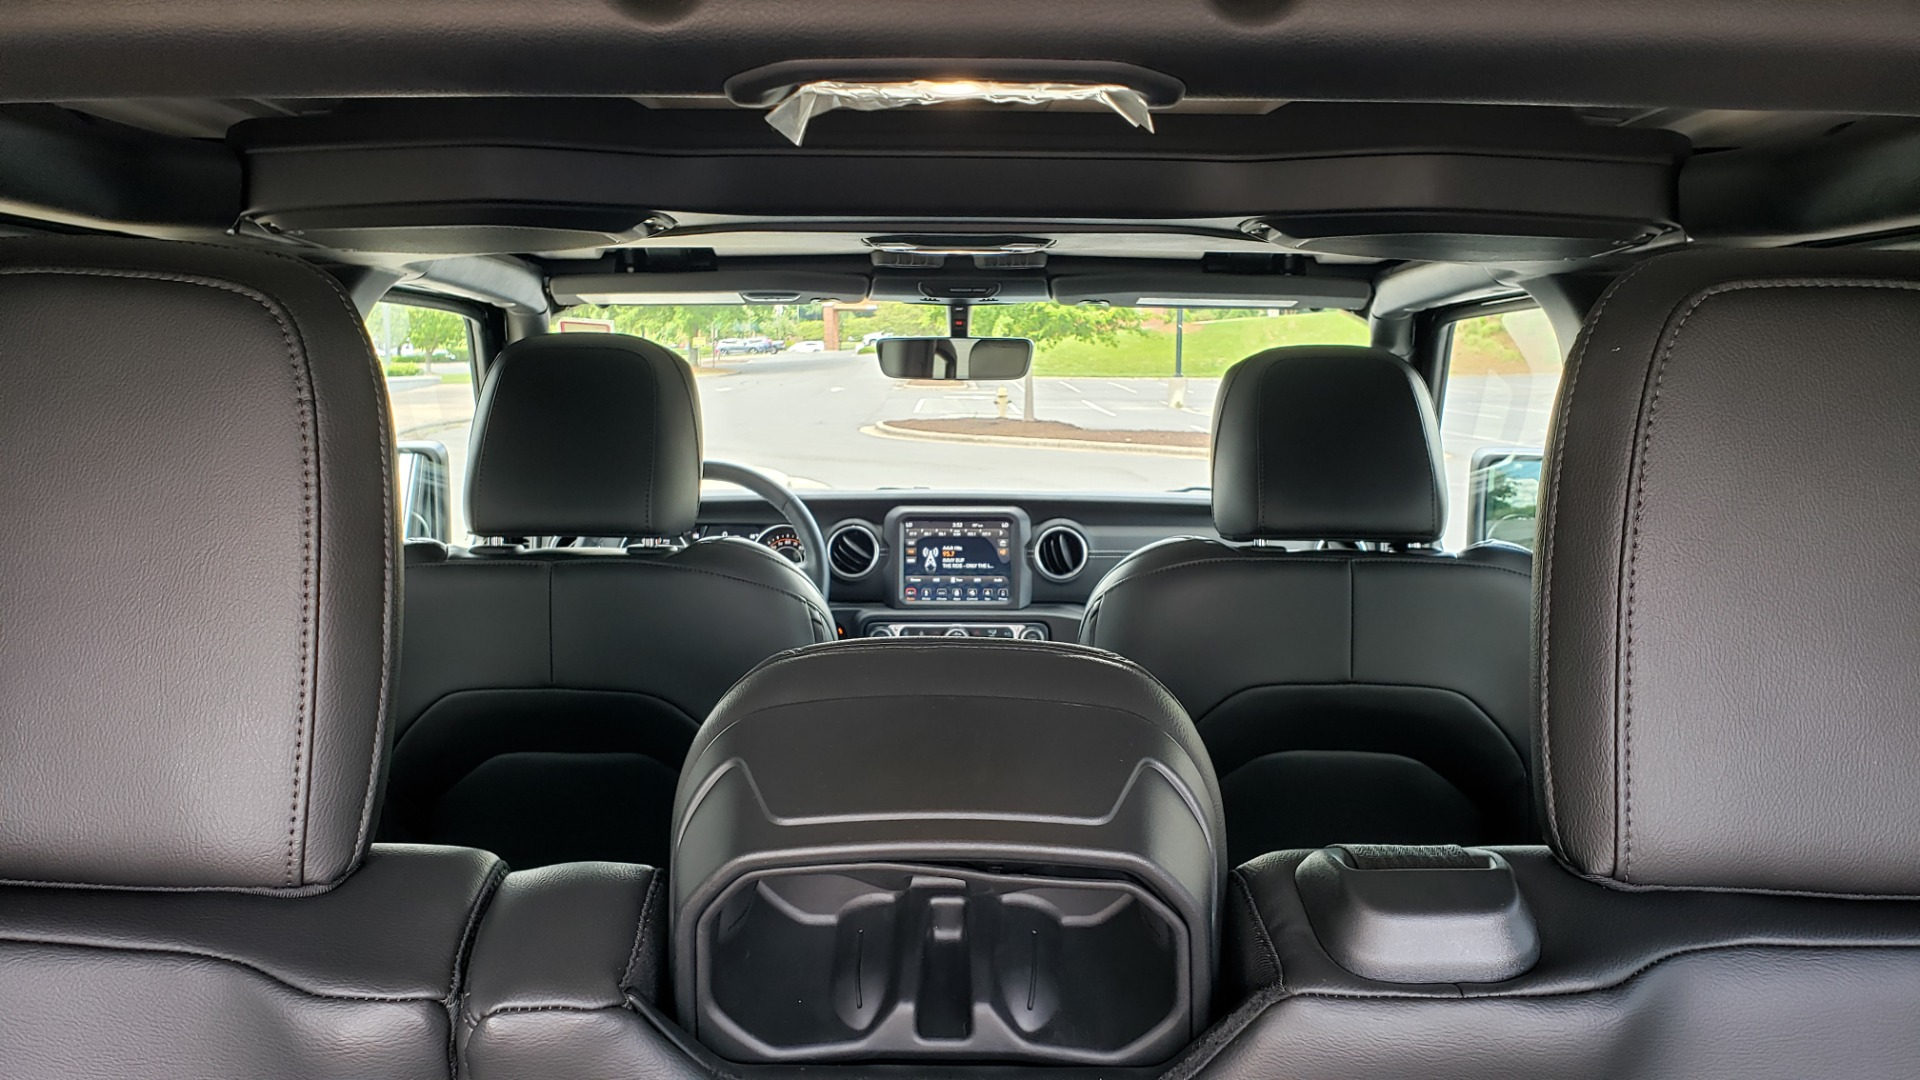 Used 2018 Jeep WRANGLER UNLIMITED SAHARA / 3.6L V6 / 6-SPD MAN / ALPINE / NAV / HTD STS / REARVIEW for sale $43,999 at Formula Imports in Charlotte NC 28227 25